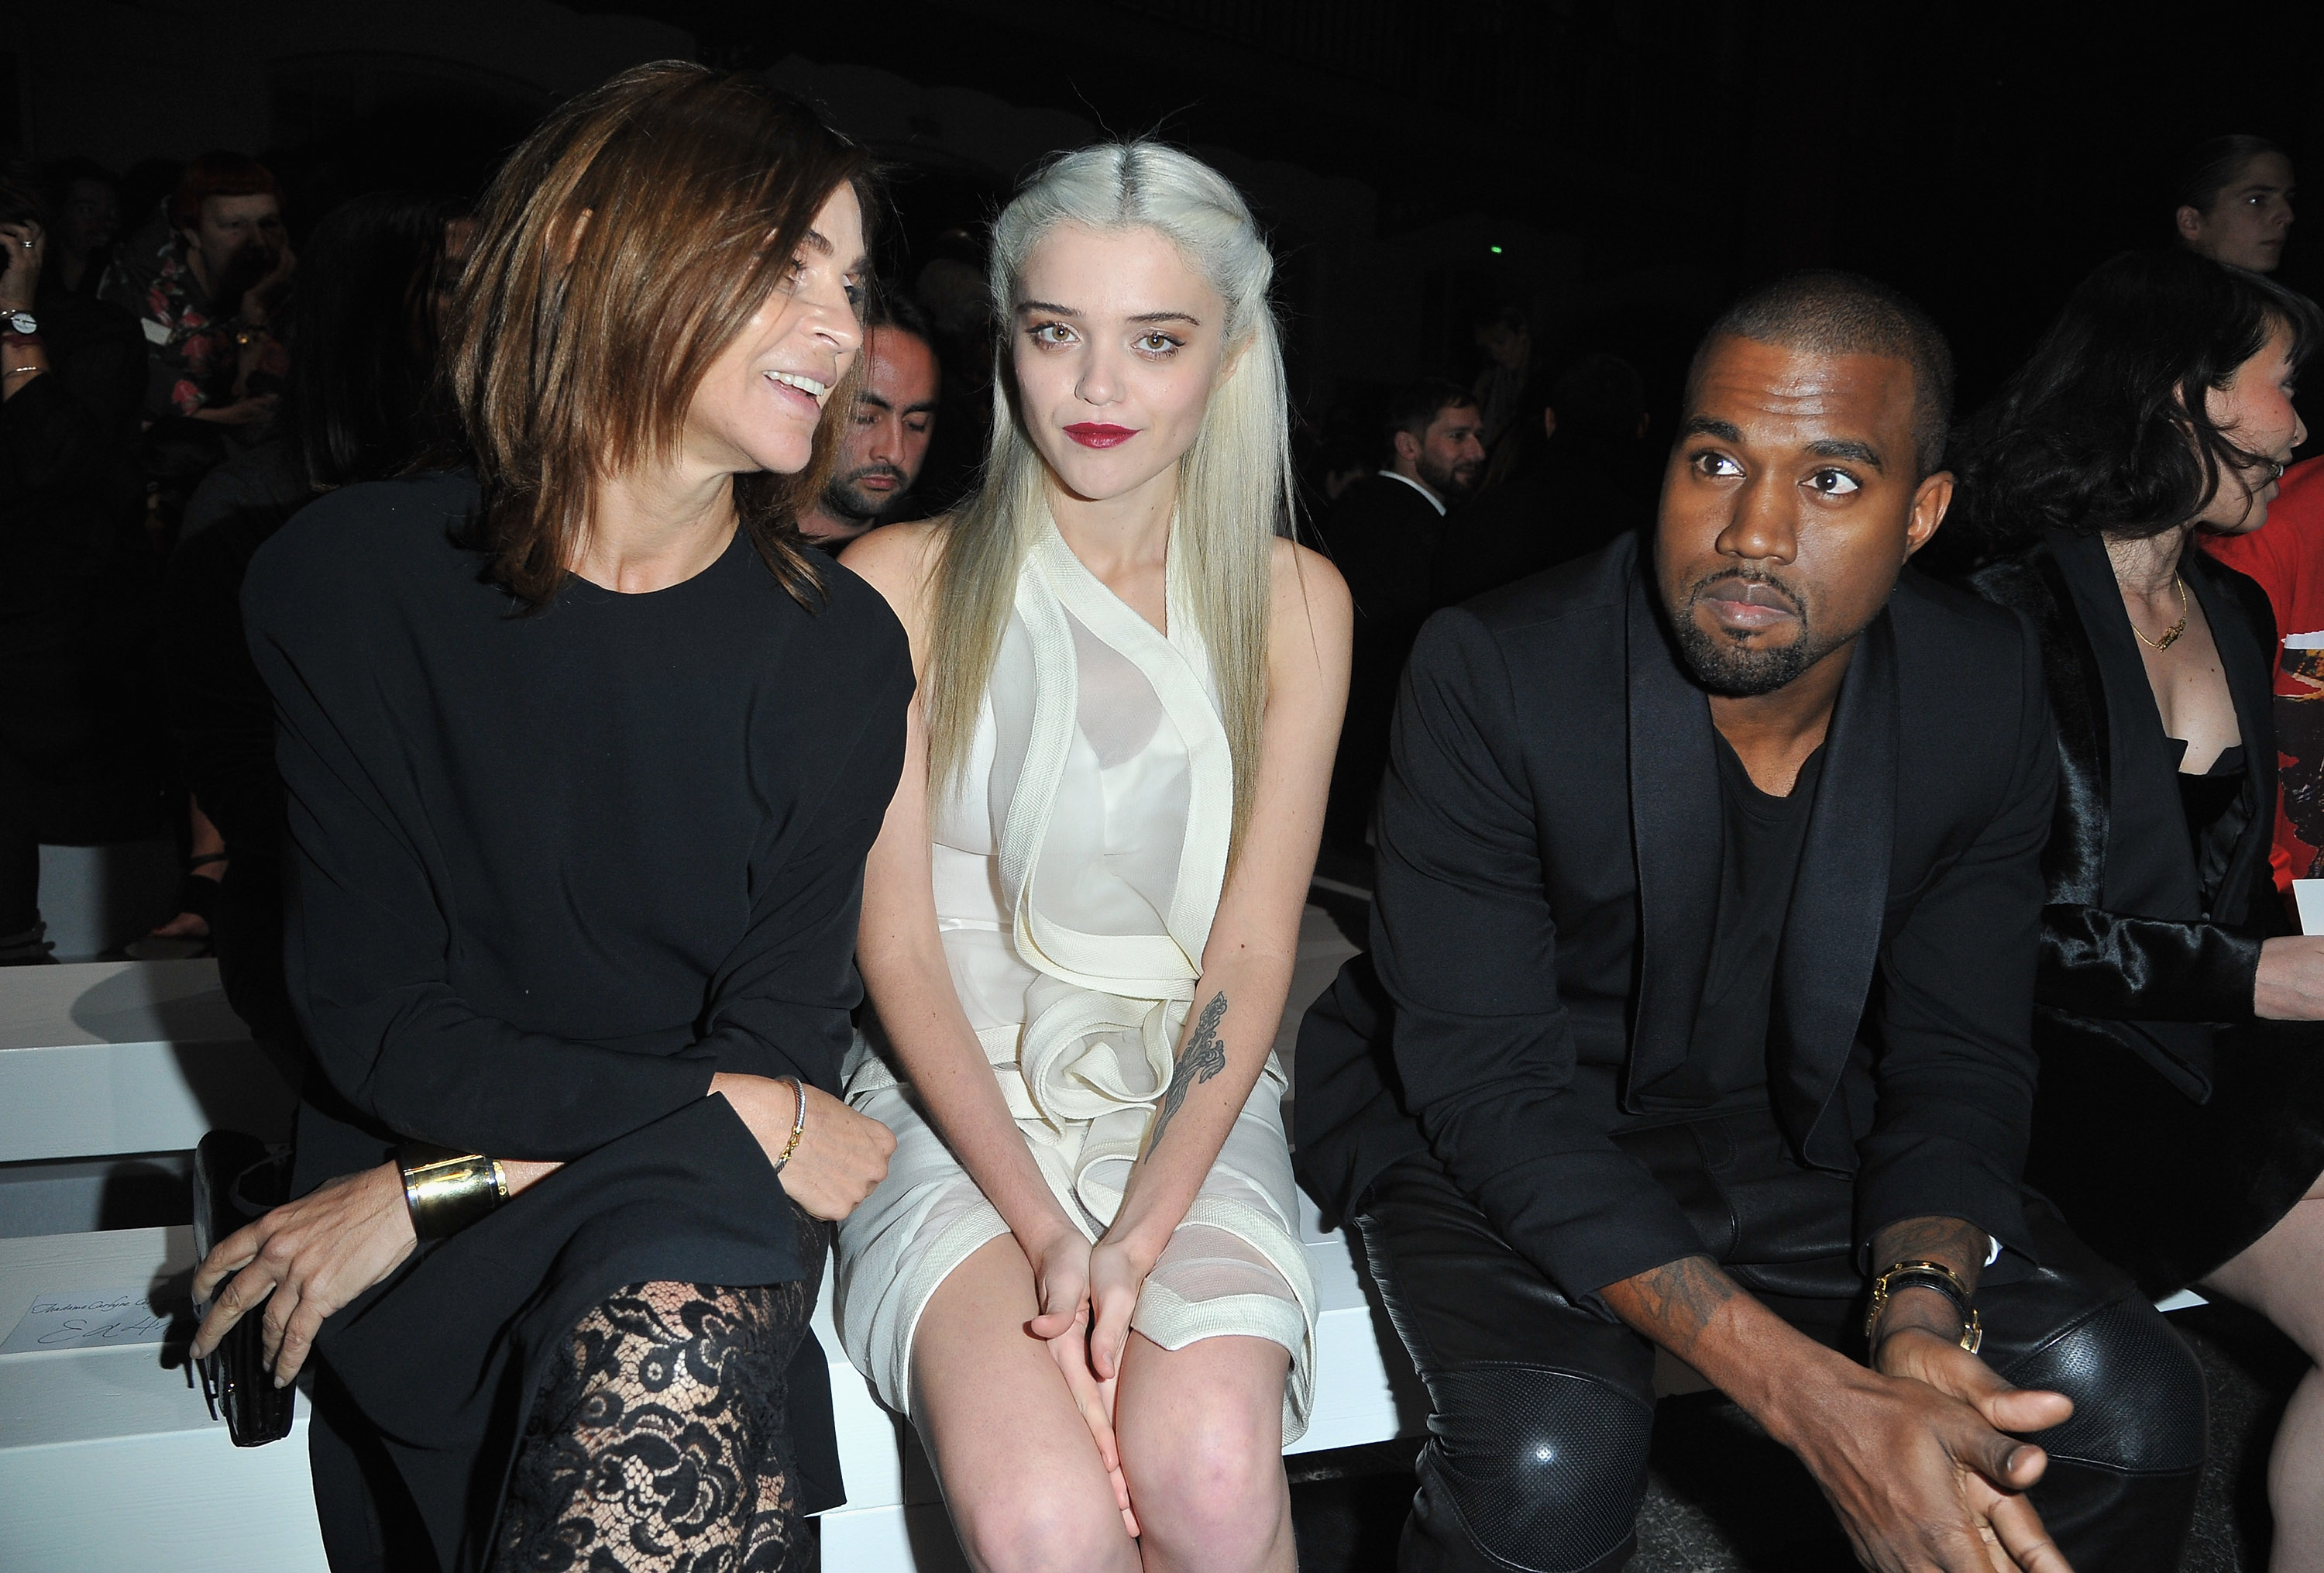 Carine Roitfeld, Sky Ferreira and Kanye West at the Givenchy Spring/Summer 2013 fashion show.